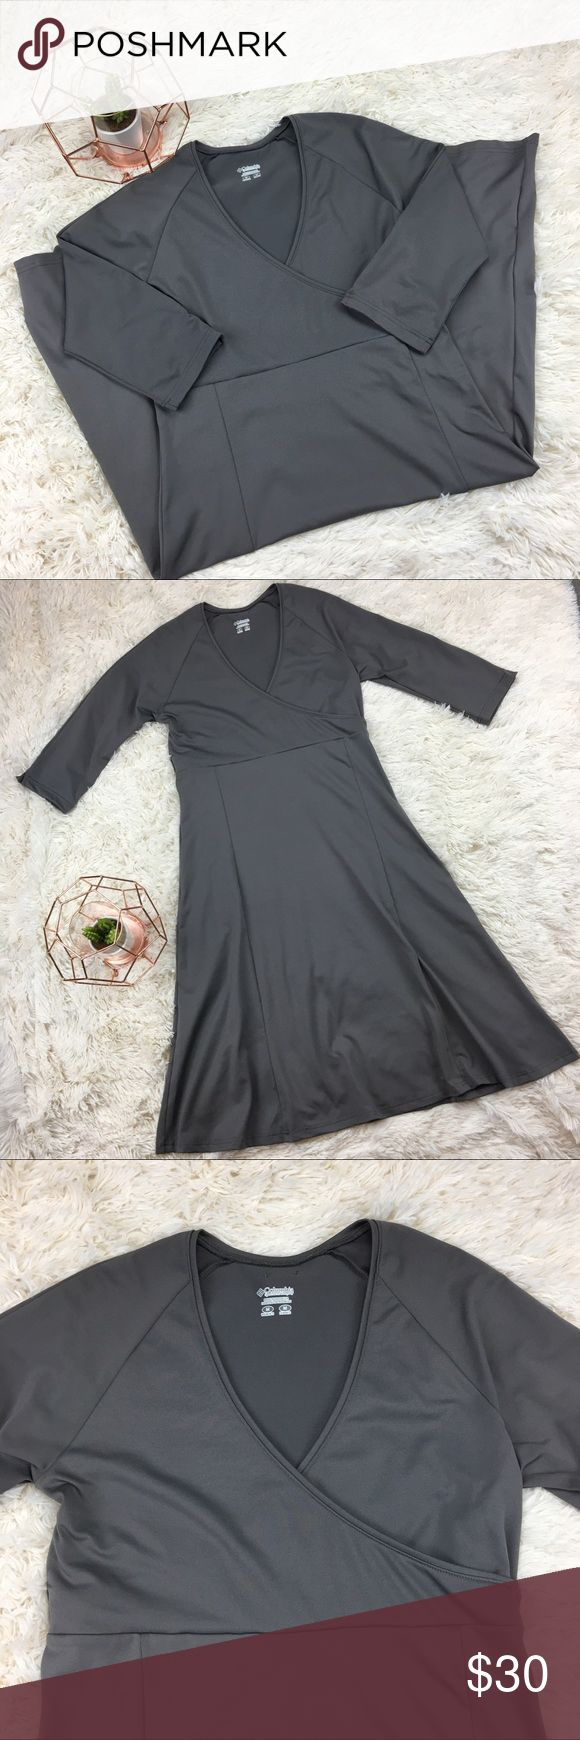 Columbia Grey 3/4 Sleeve Dress w/ Cross Bust Grey Columbia dress with Vneck cross bust and 3/4 sleeves. Great stretchy material. Perfect casual dress. Similar styling to Patagonia Bandha dresses. Preloved. Please refer to photos for measurements. Columbia Dresses Midi